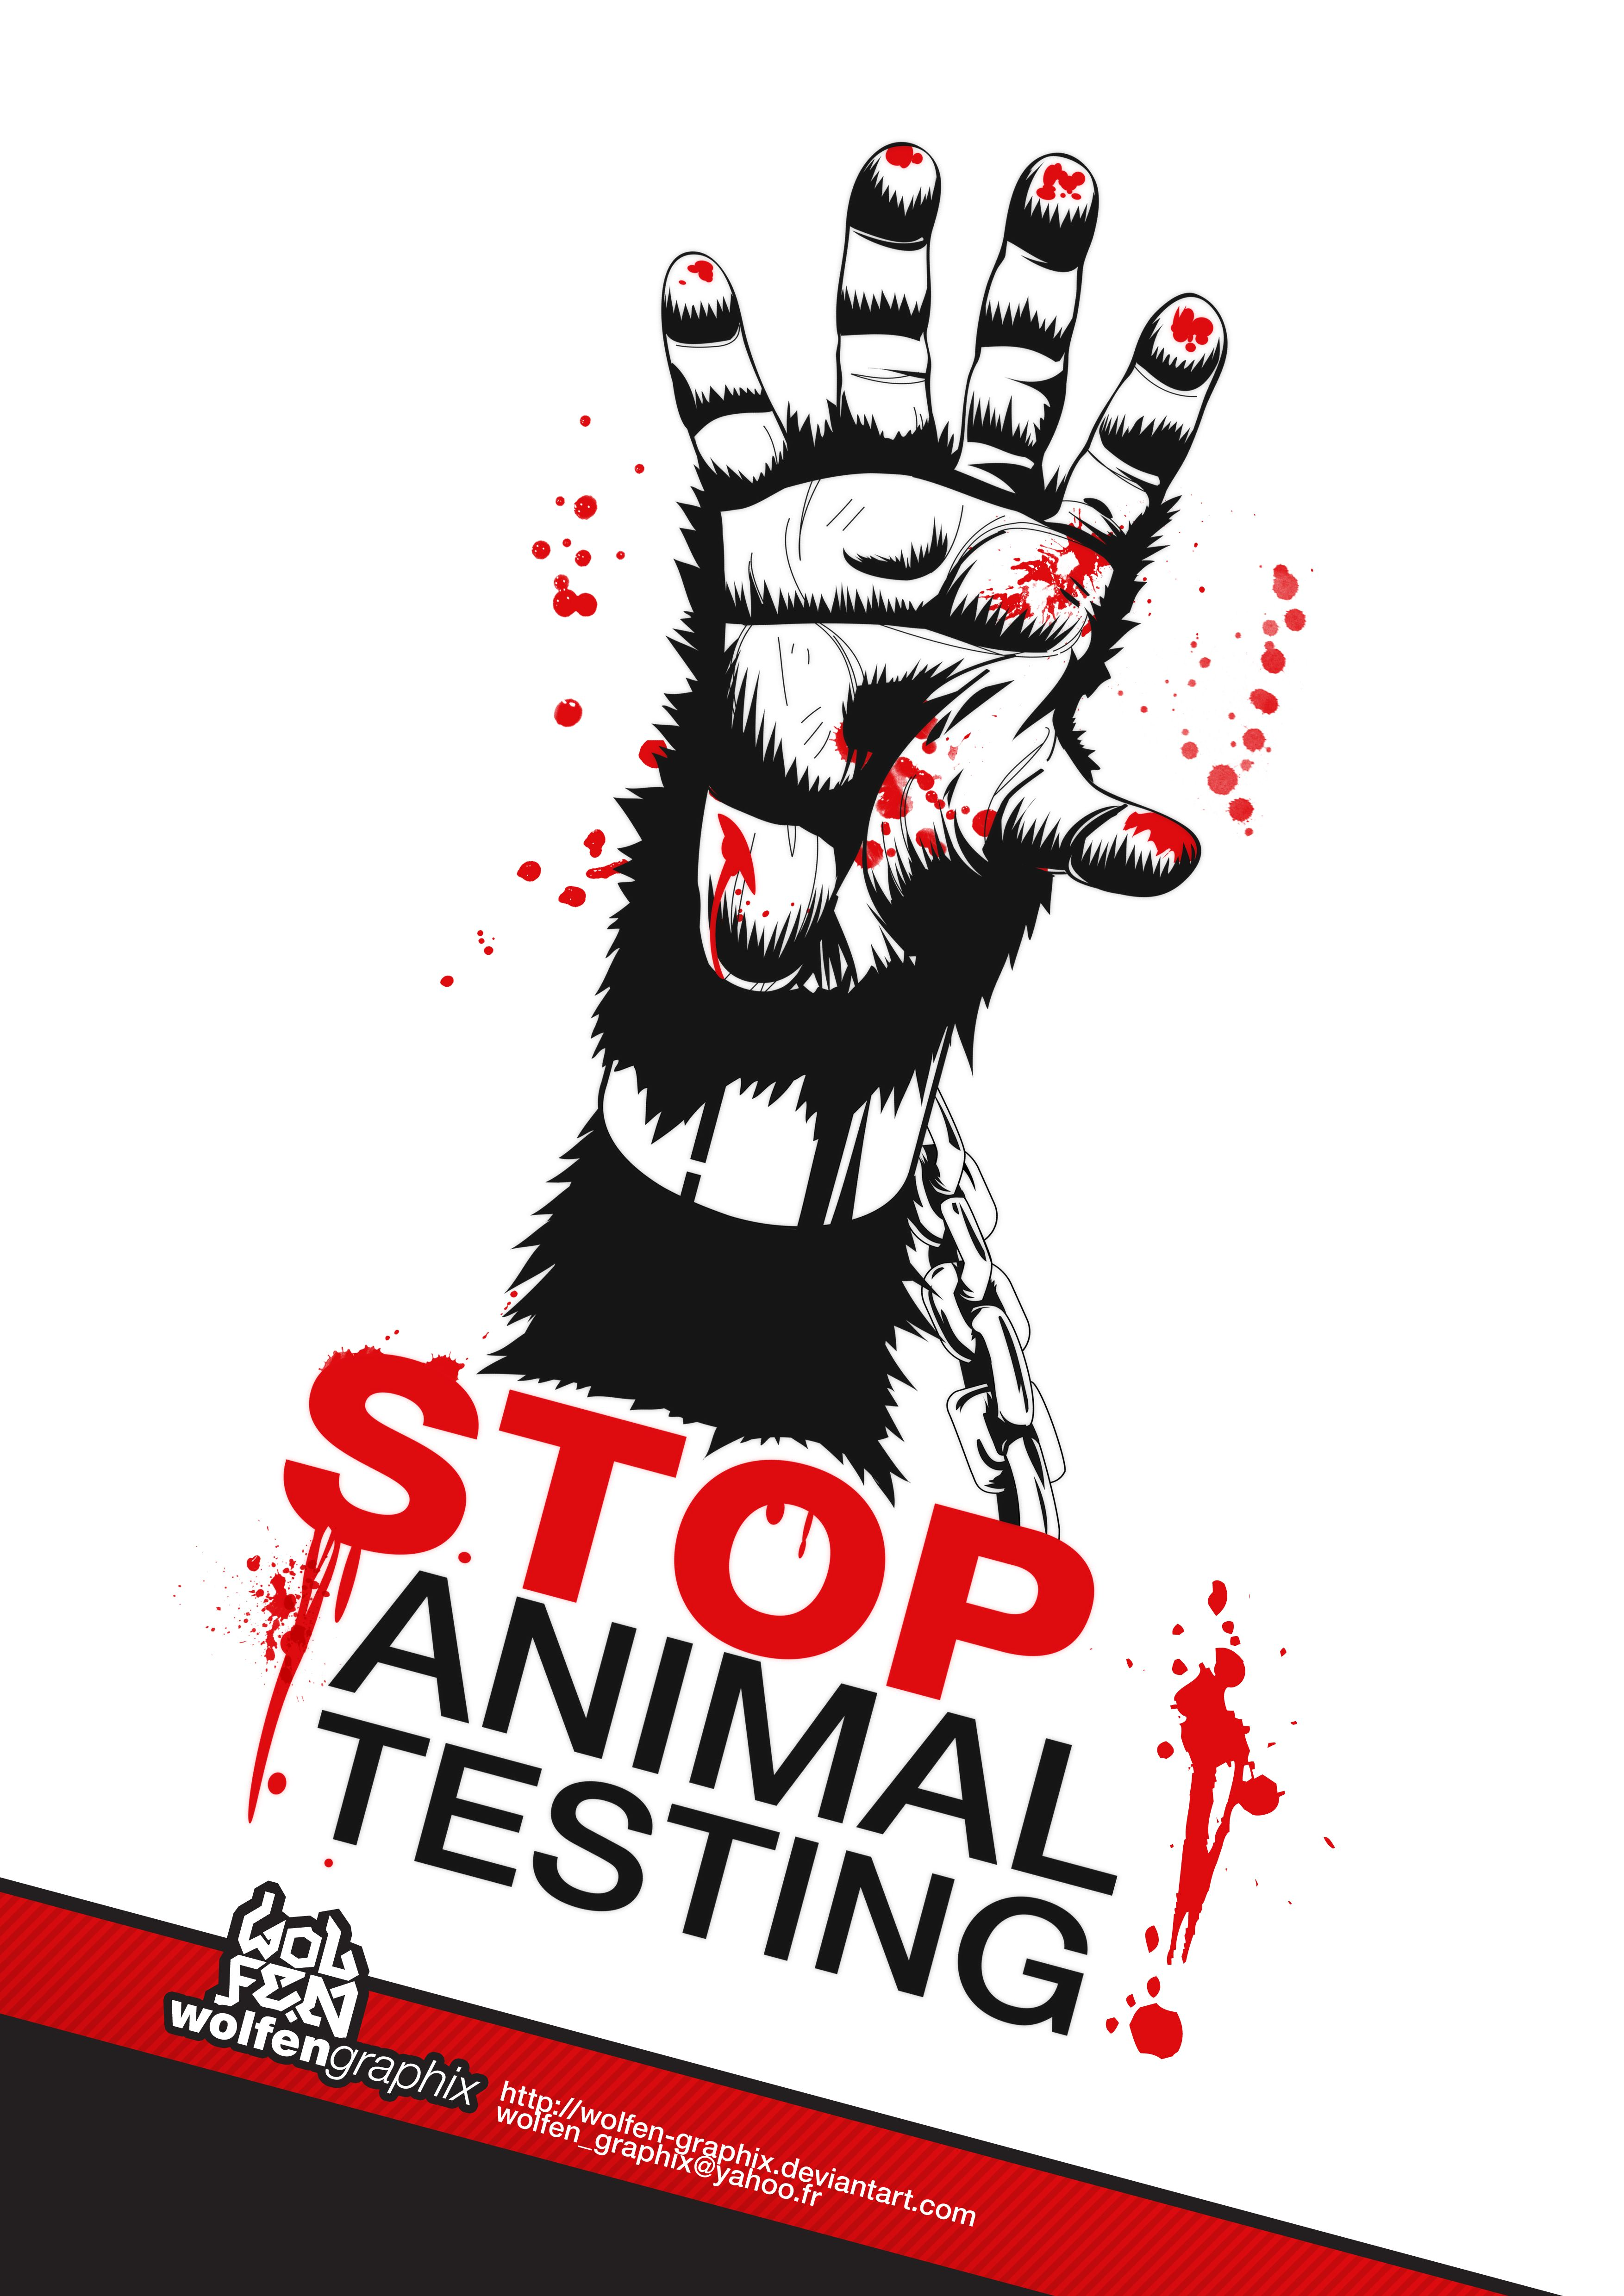 Animal testing is the only way